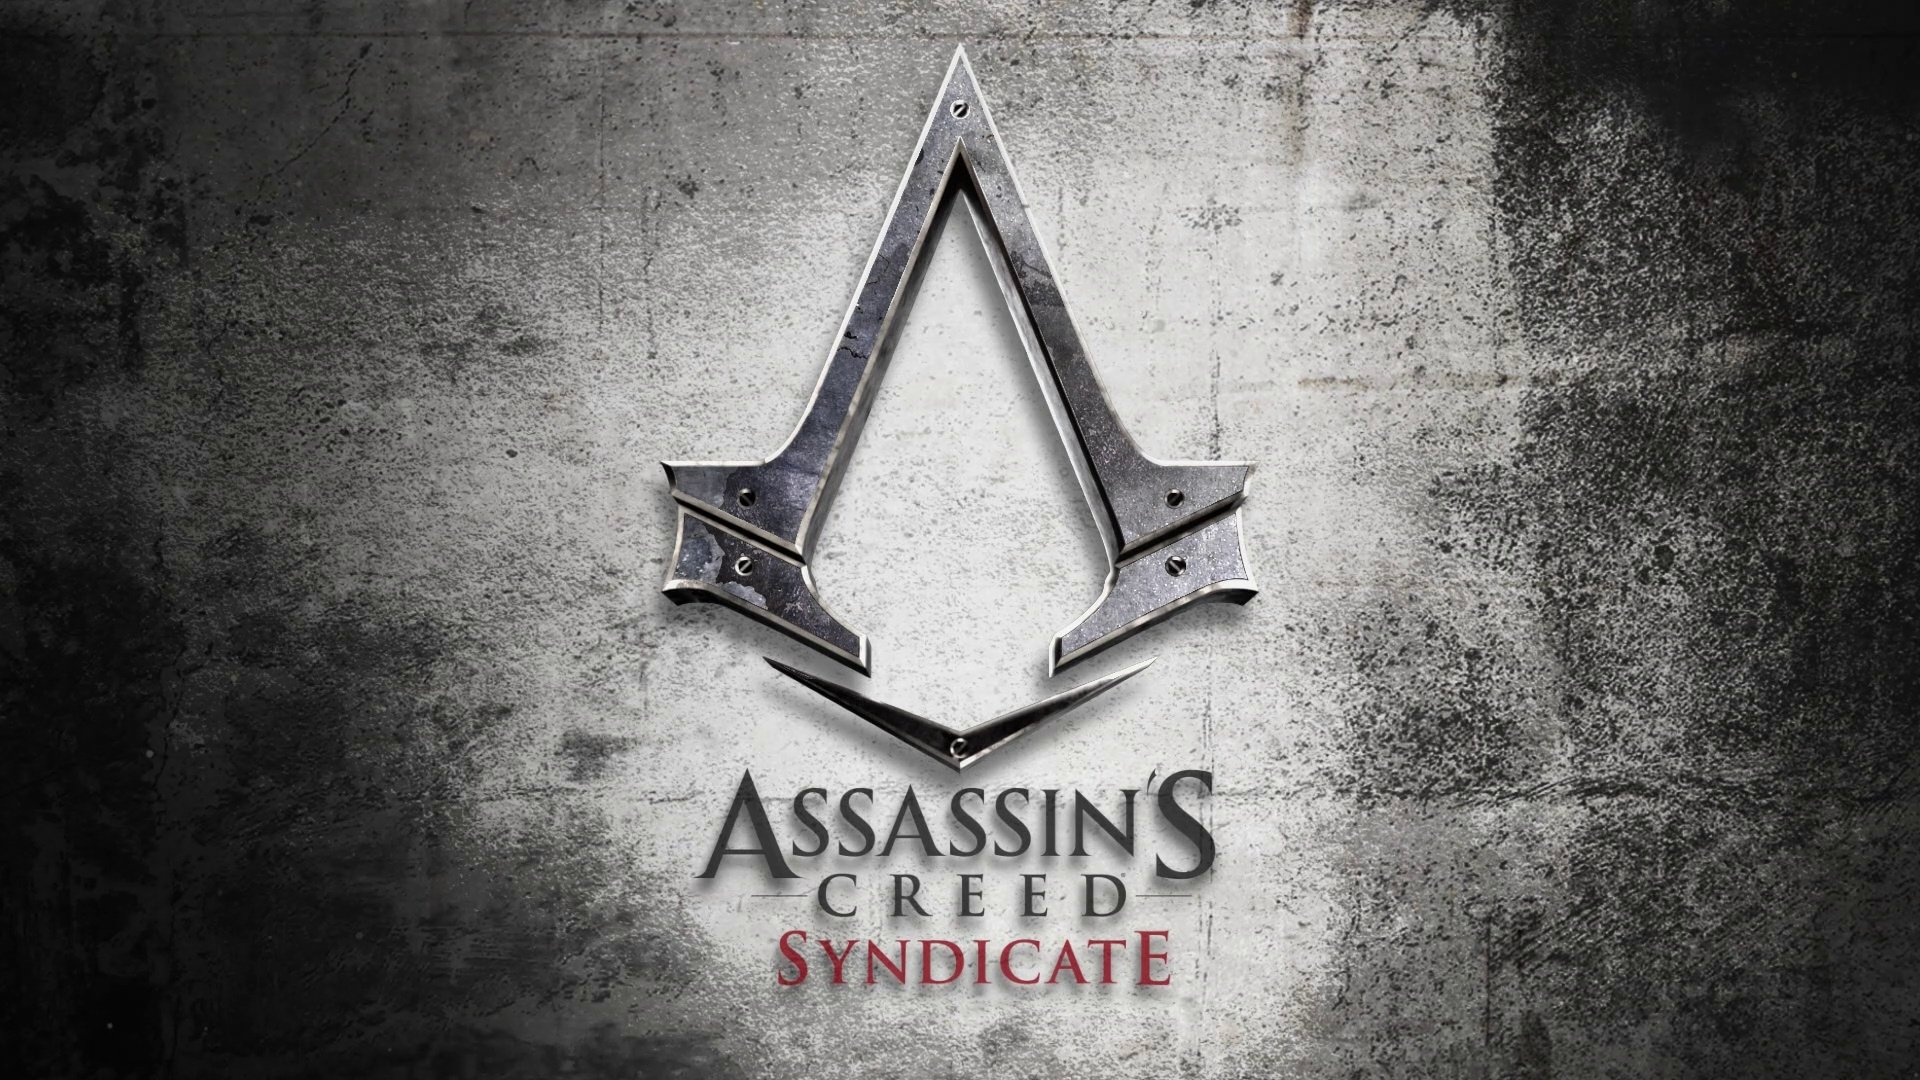 Assassin S Creed Syndicate Logo Hd Wallpaper Background Image